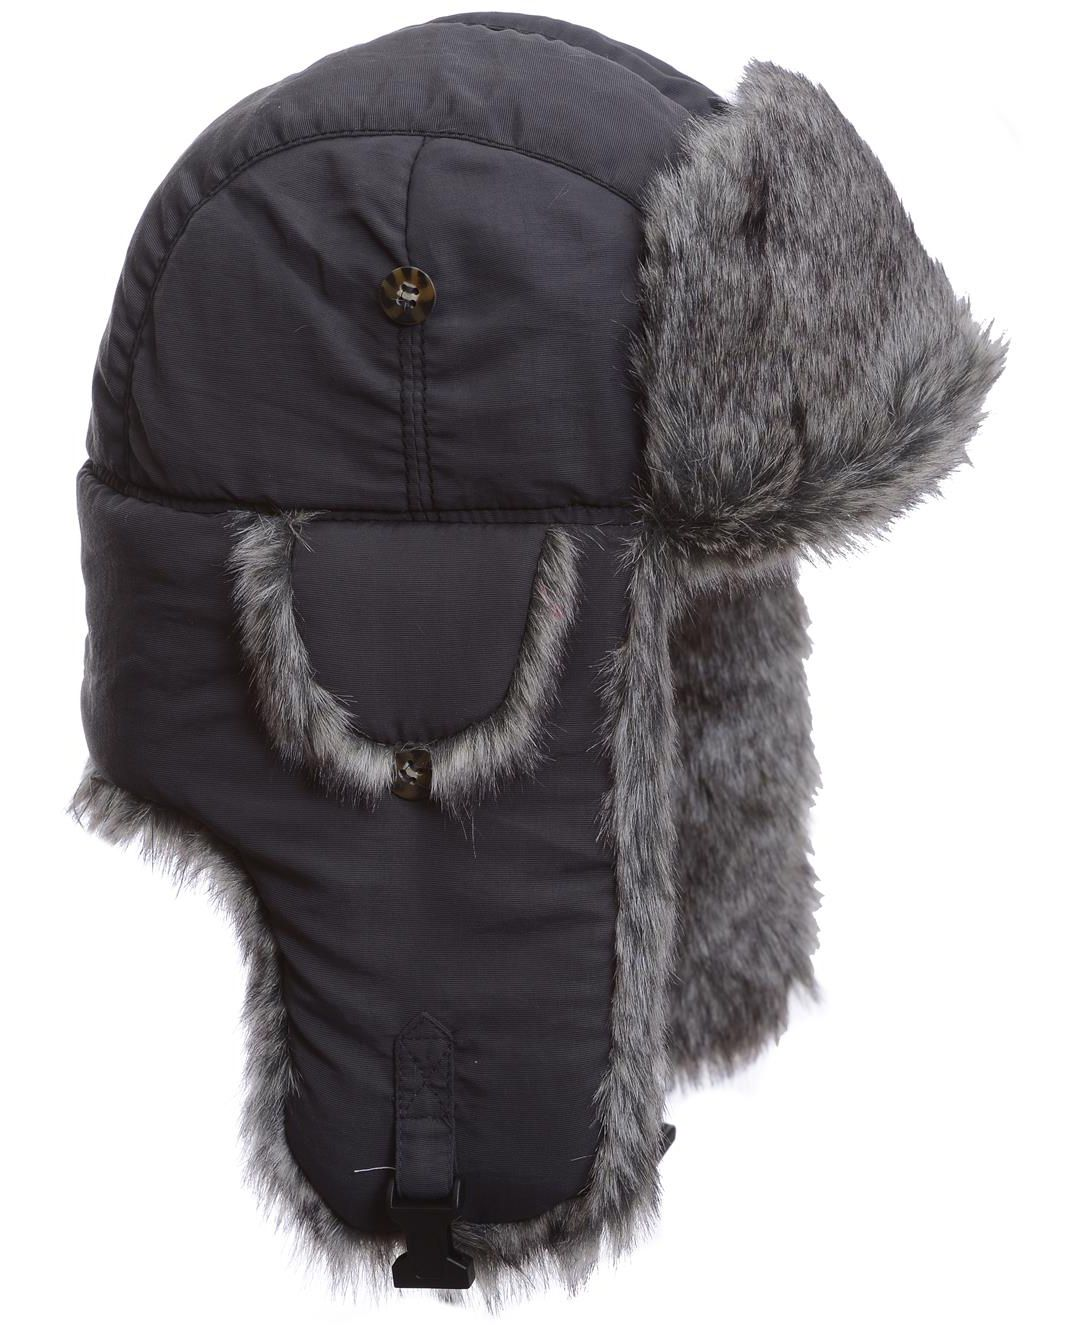 302172b2 Mad Bomber Men's Grey Supplex Faux Fur Bomber Hat | DICK'S Sporting ...